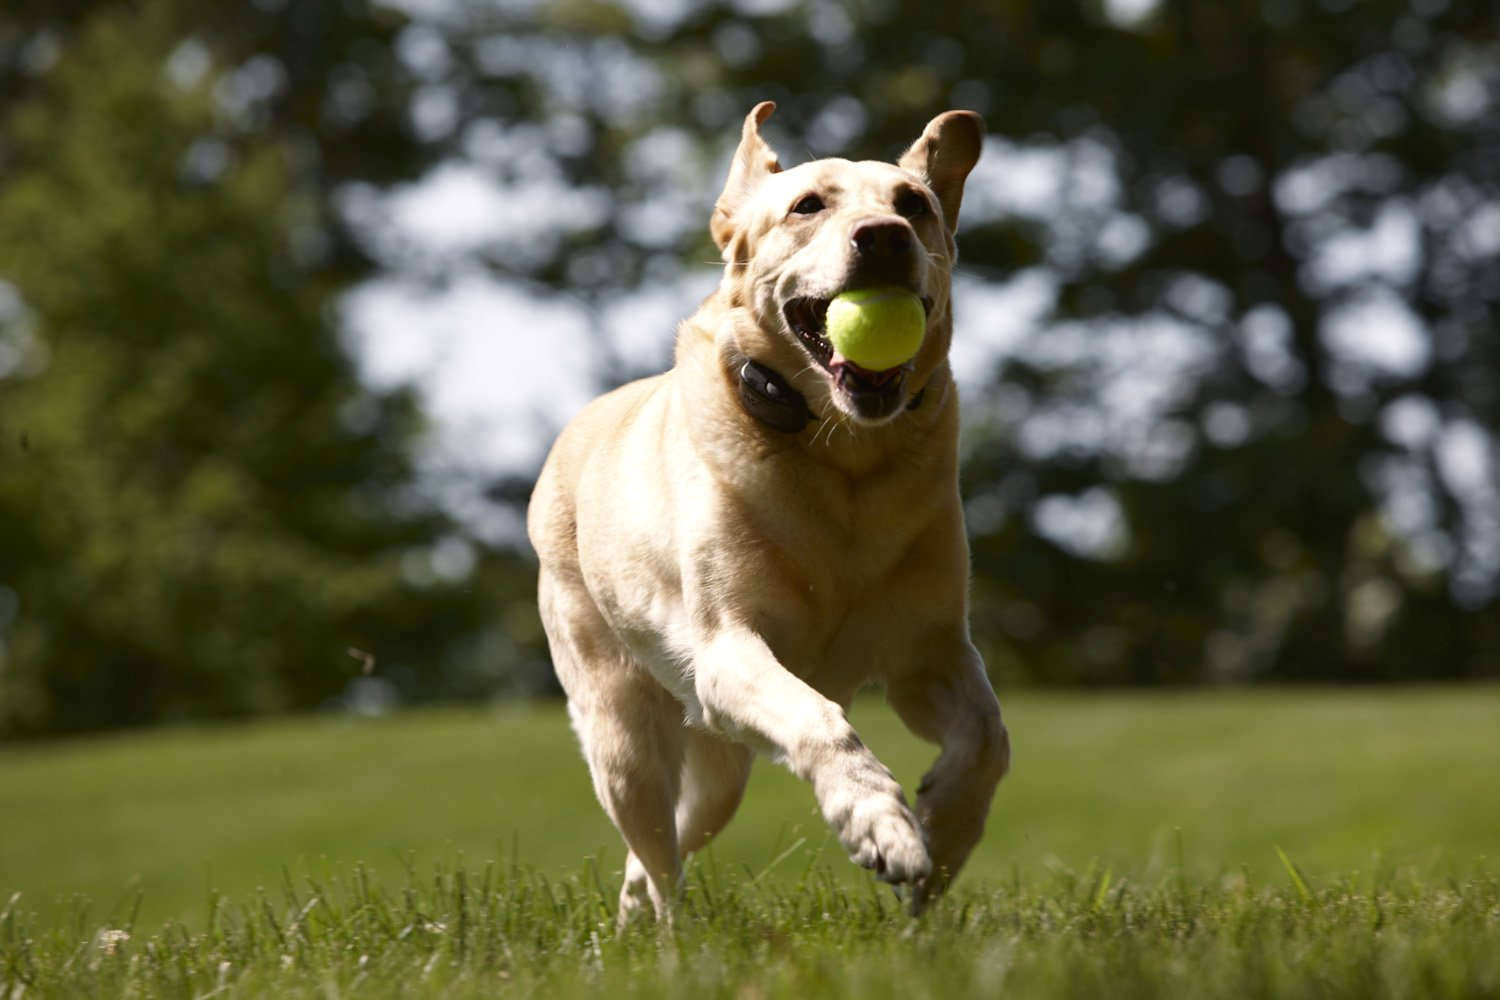 dog with ball in mouth running